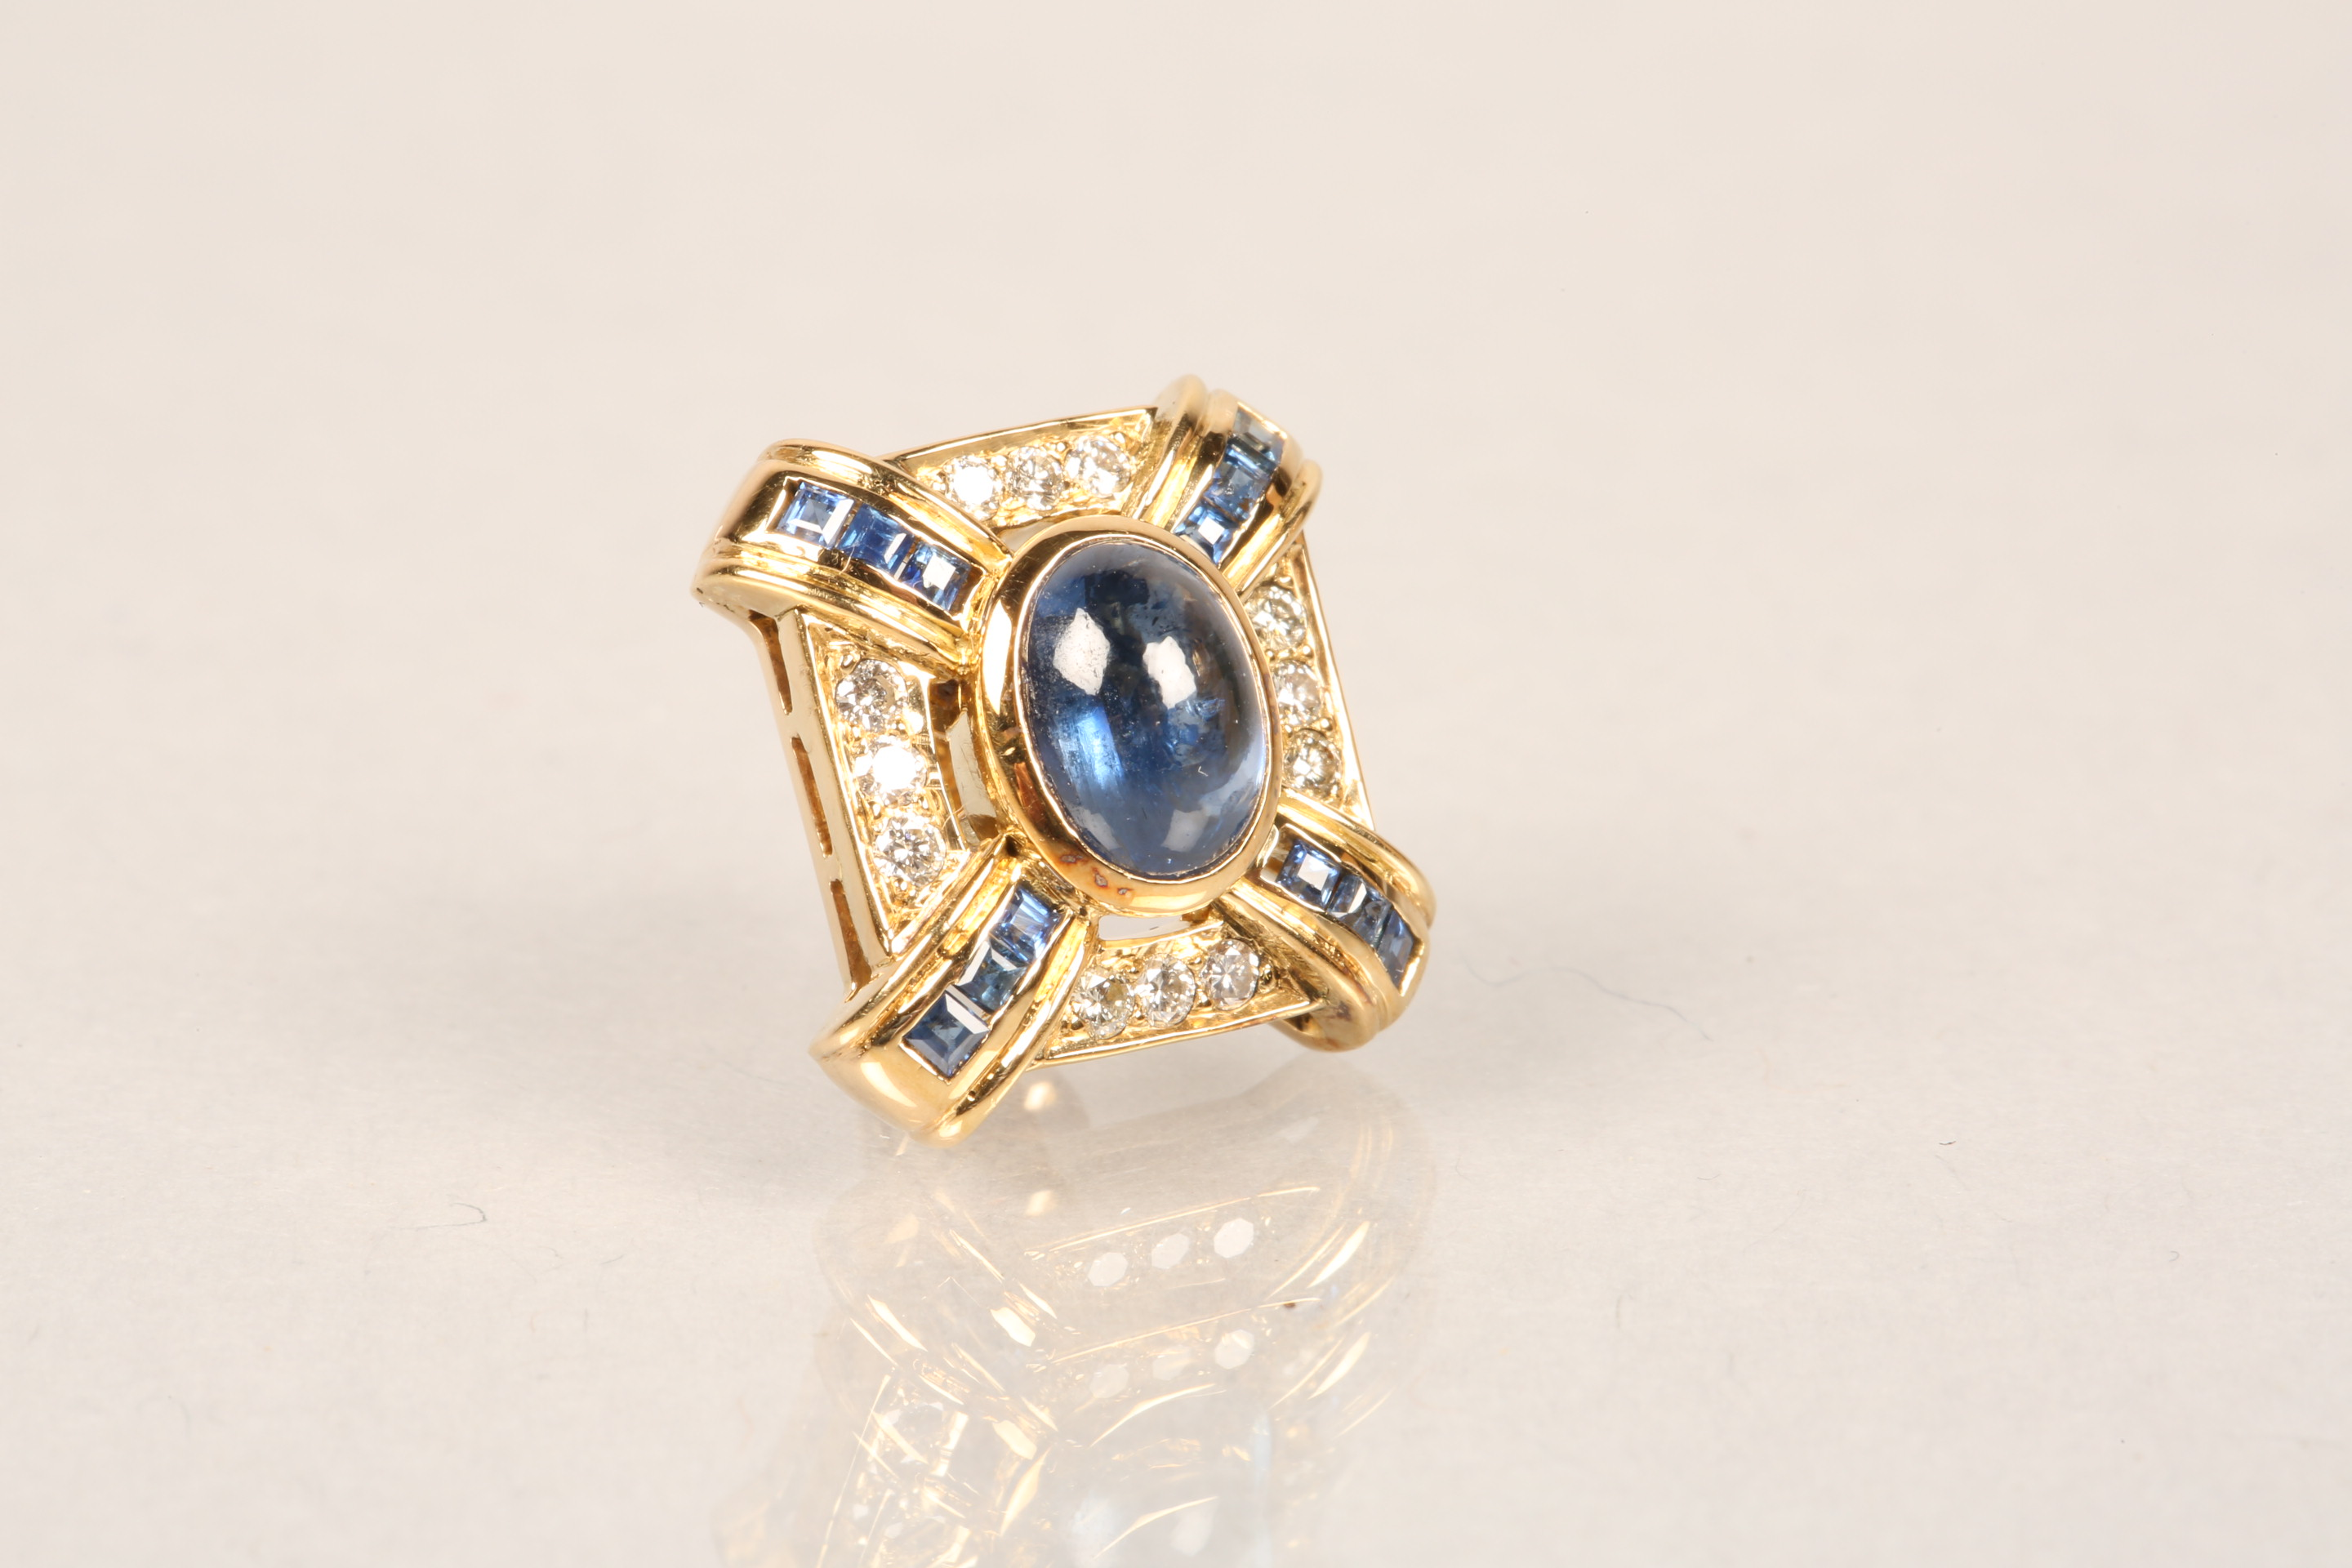 Boxed pair of 18 carat gold earrings, each set with a central blue sapphire cabochon surrounded by - Image 4 of 6